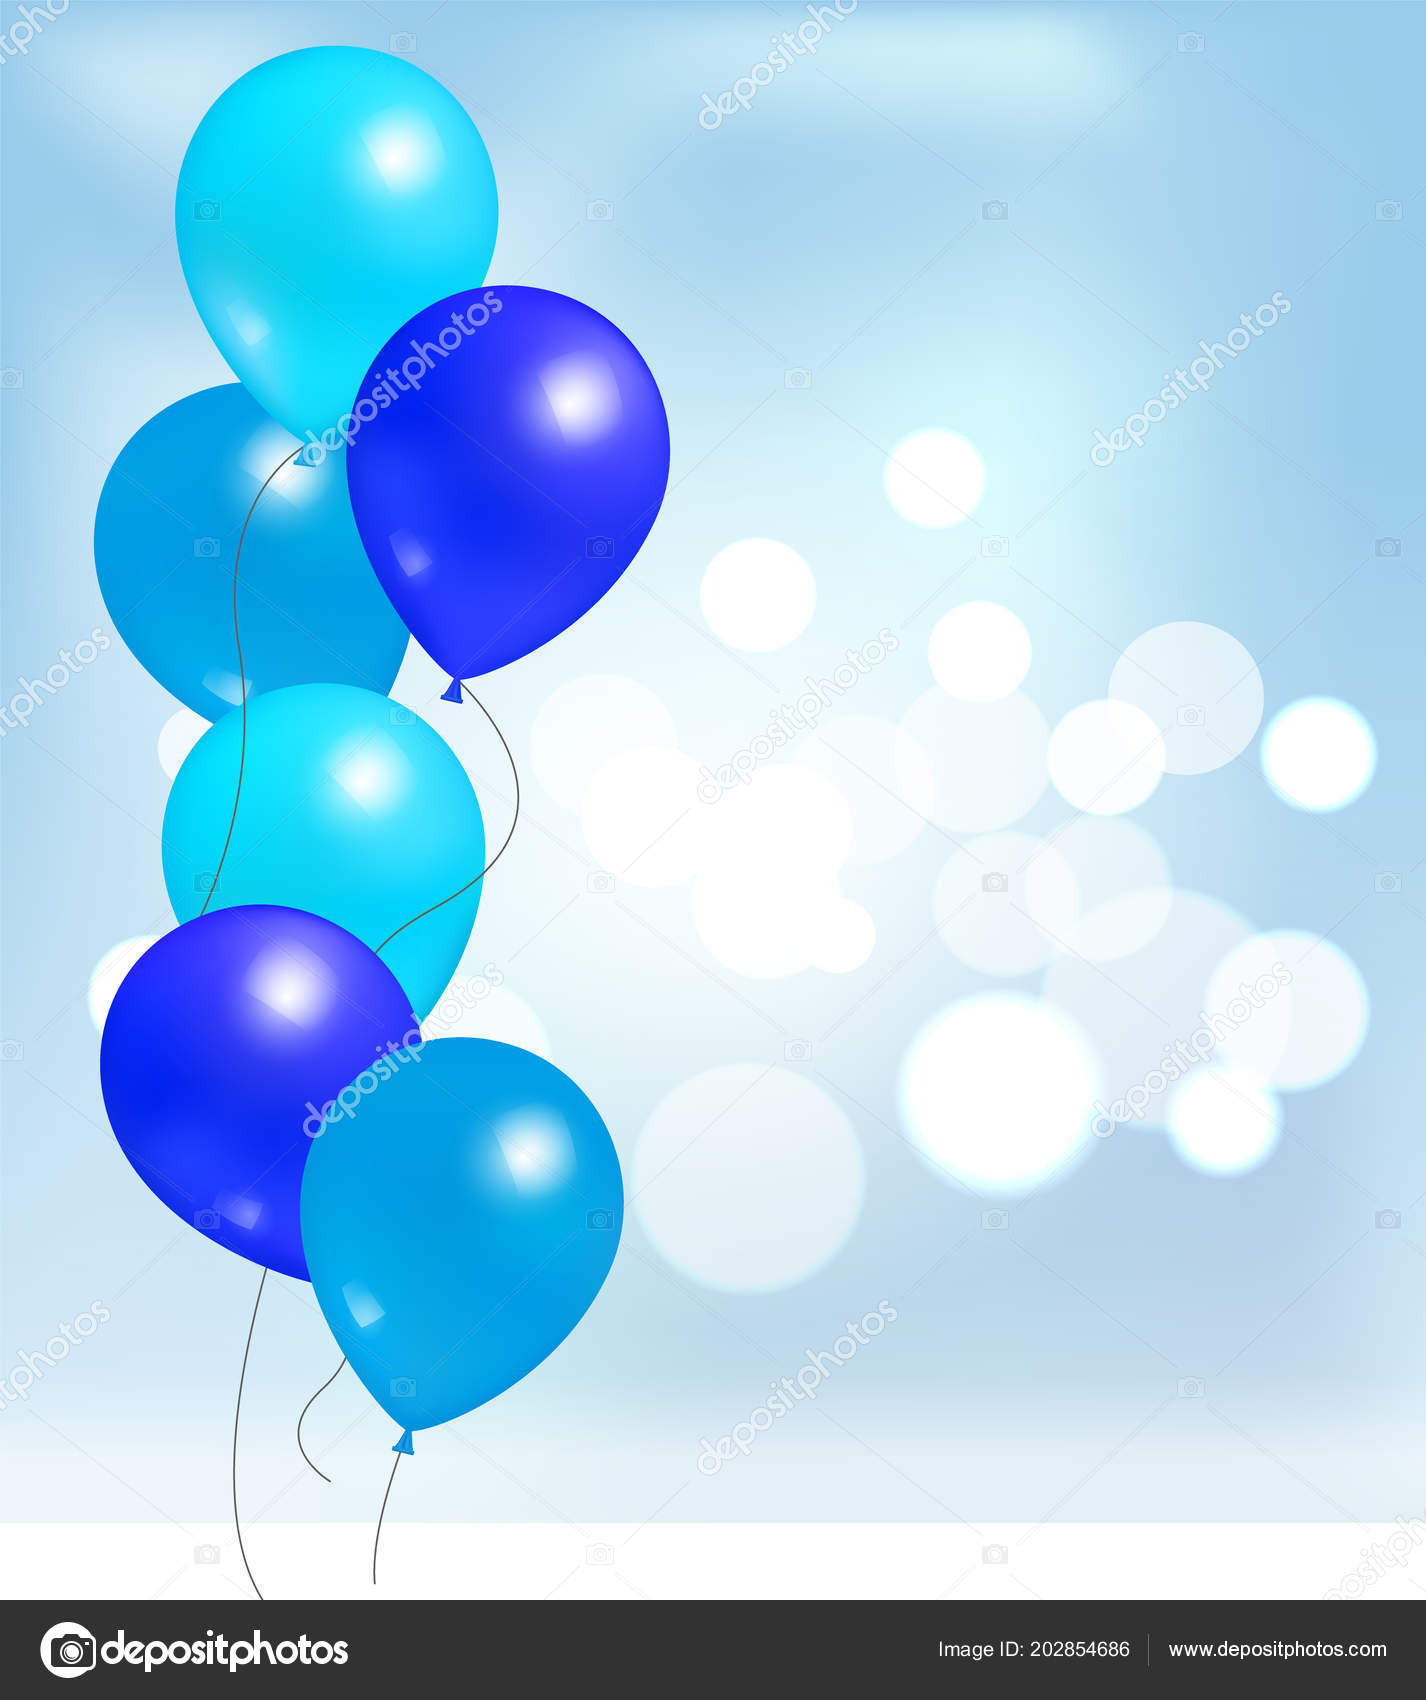 Balloons For Party Decorations Birthday Background Stockvektor